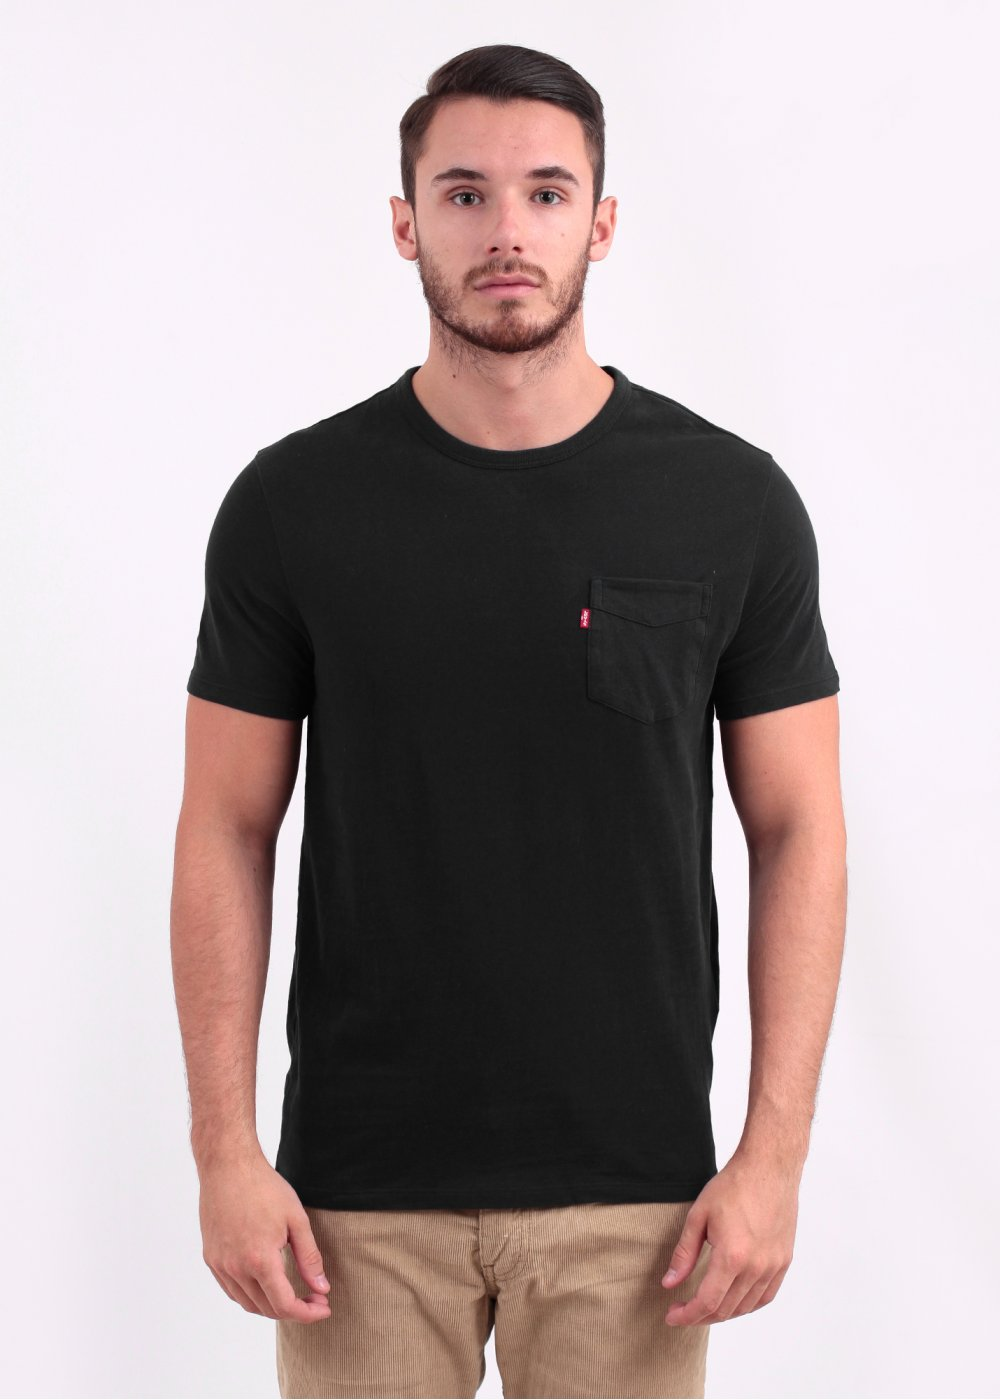 a8c4f988 Levis Short Sleeve Sunset Pocket Tee - Jet Black